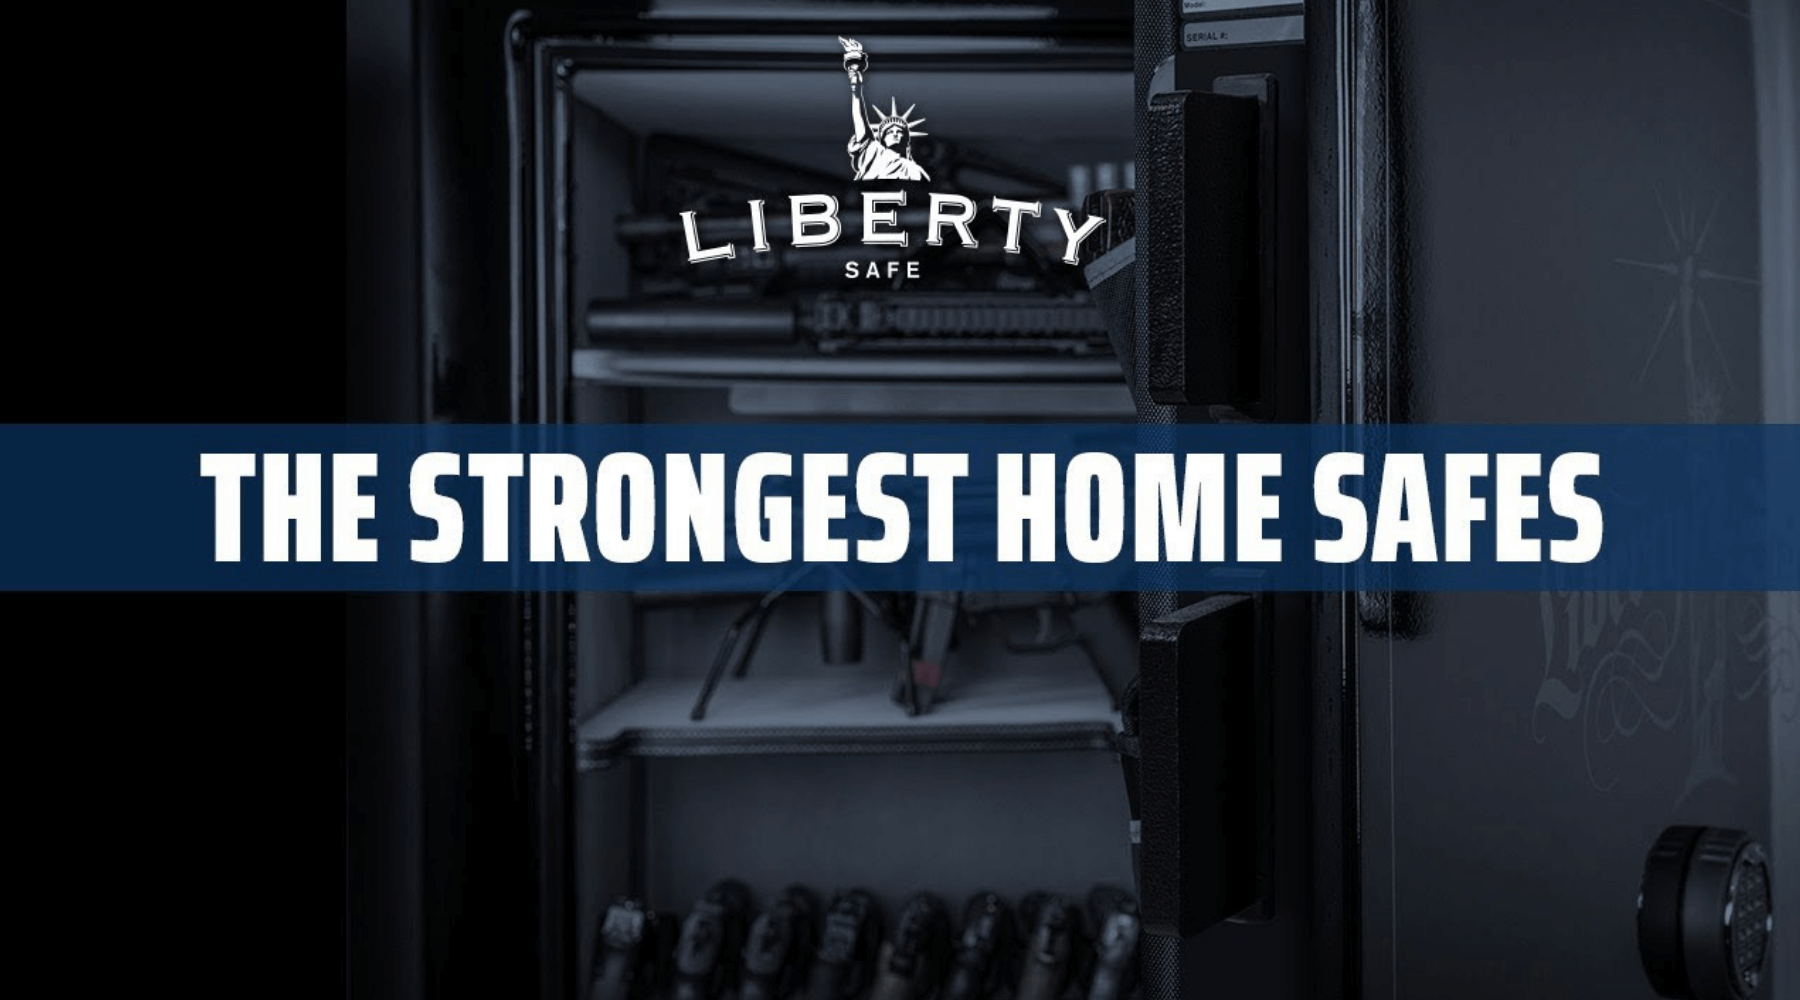 Liberty-safe-the-strongest-home-safes